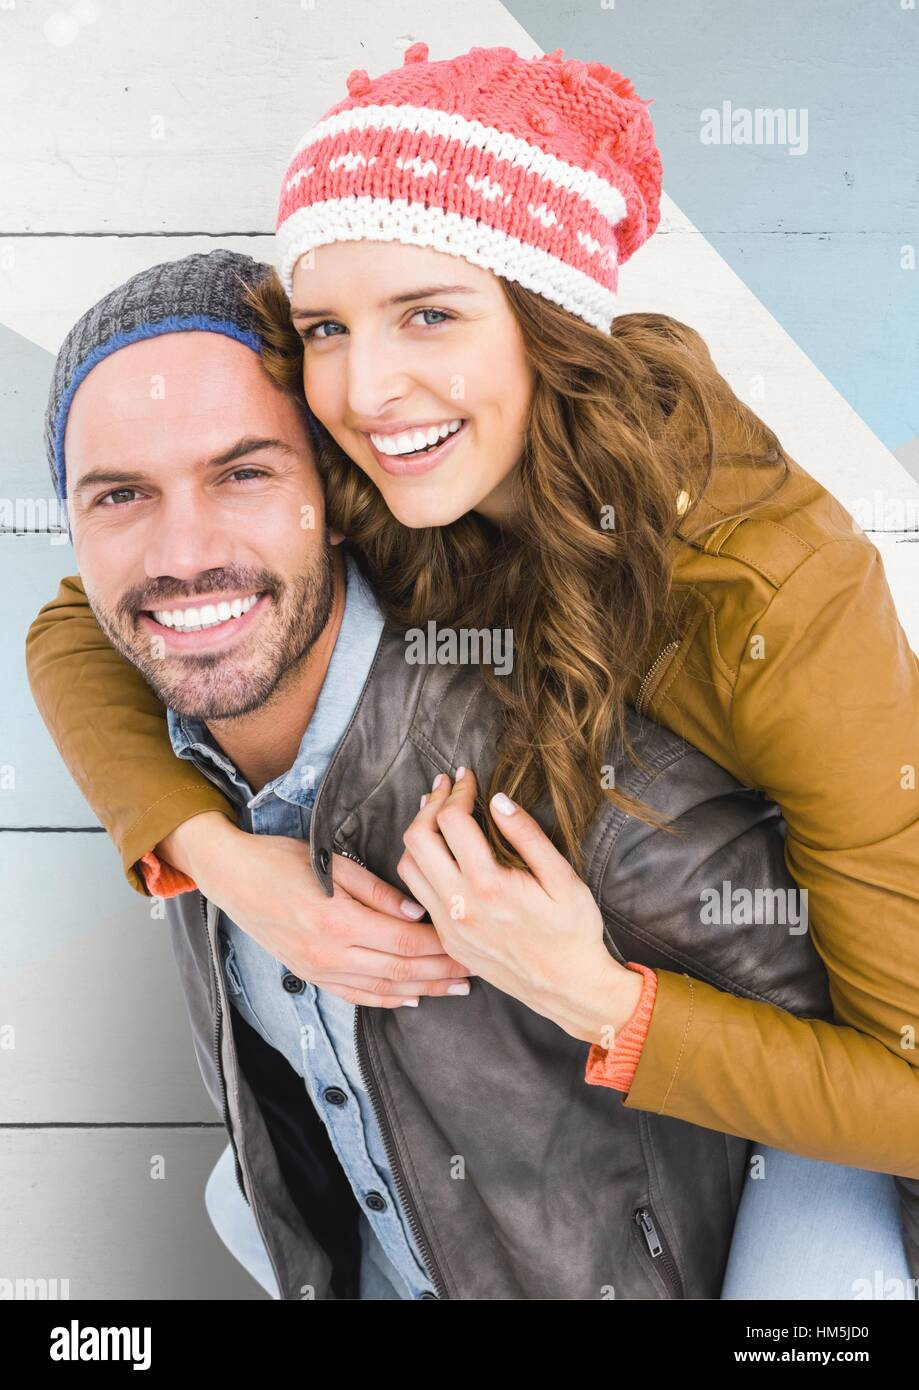 Portrait of happy man giving piggy back to woman Photo Stock